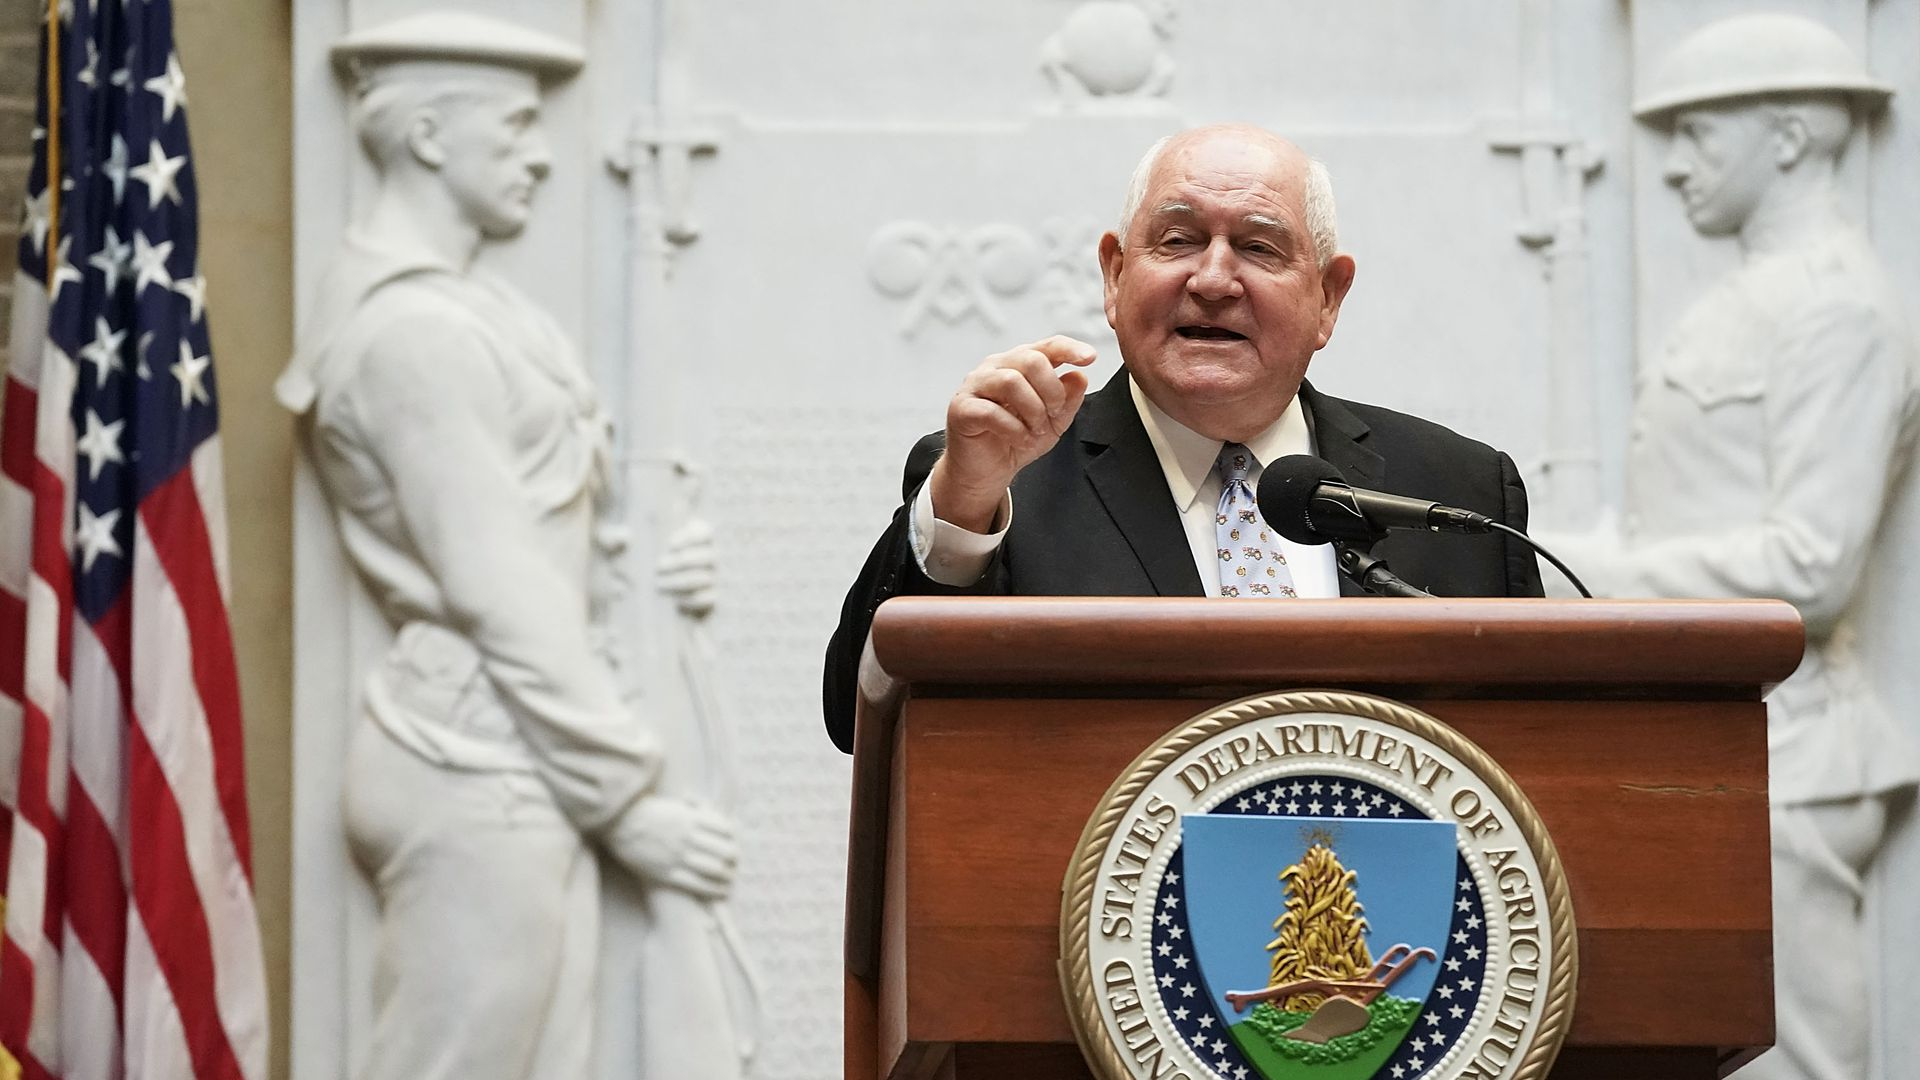 Secretary of Agriculture Sonny Perdue speaks during a forum April 18, 2018 in Washington, DC.